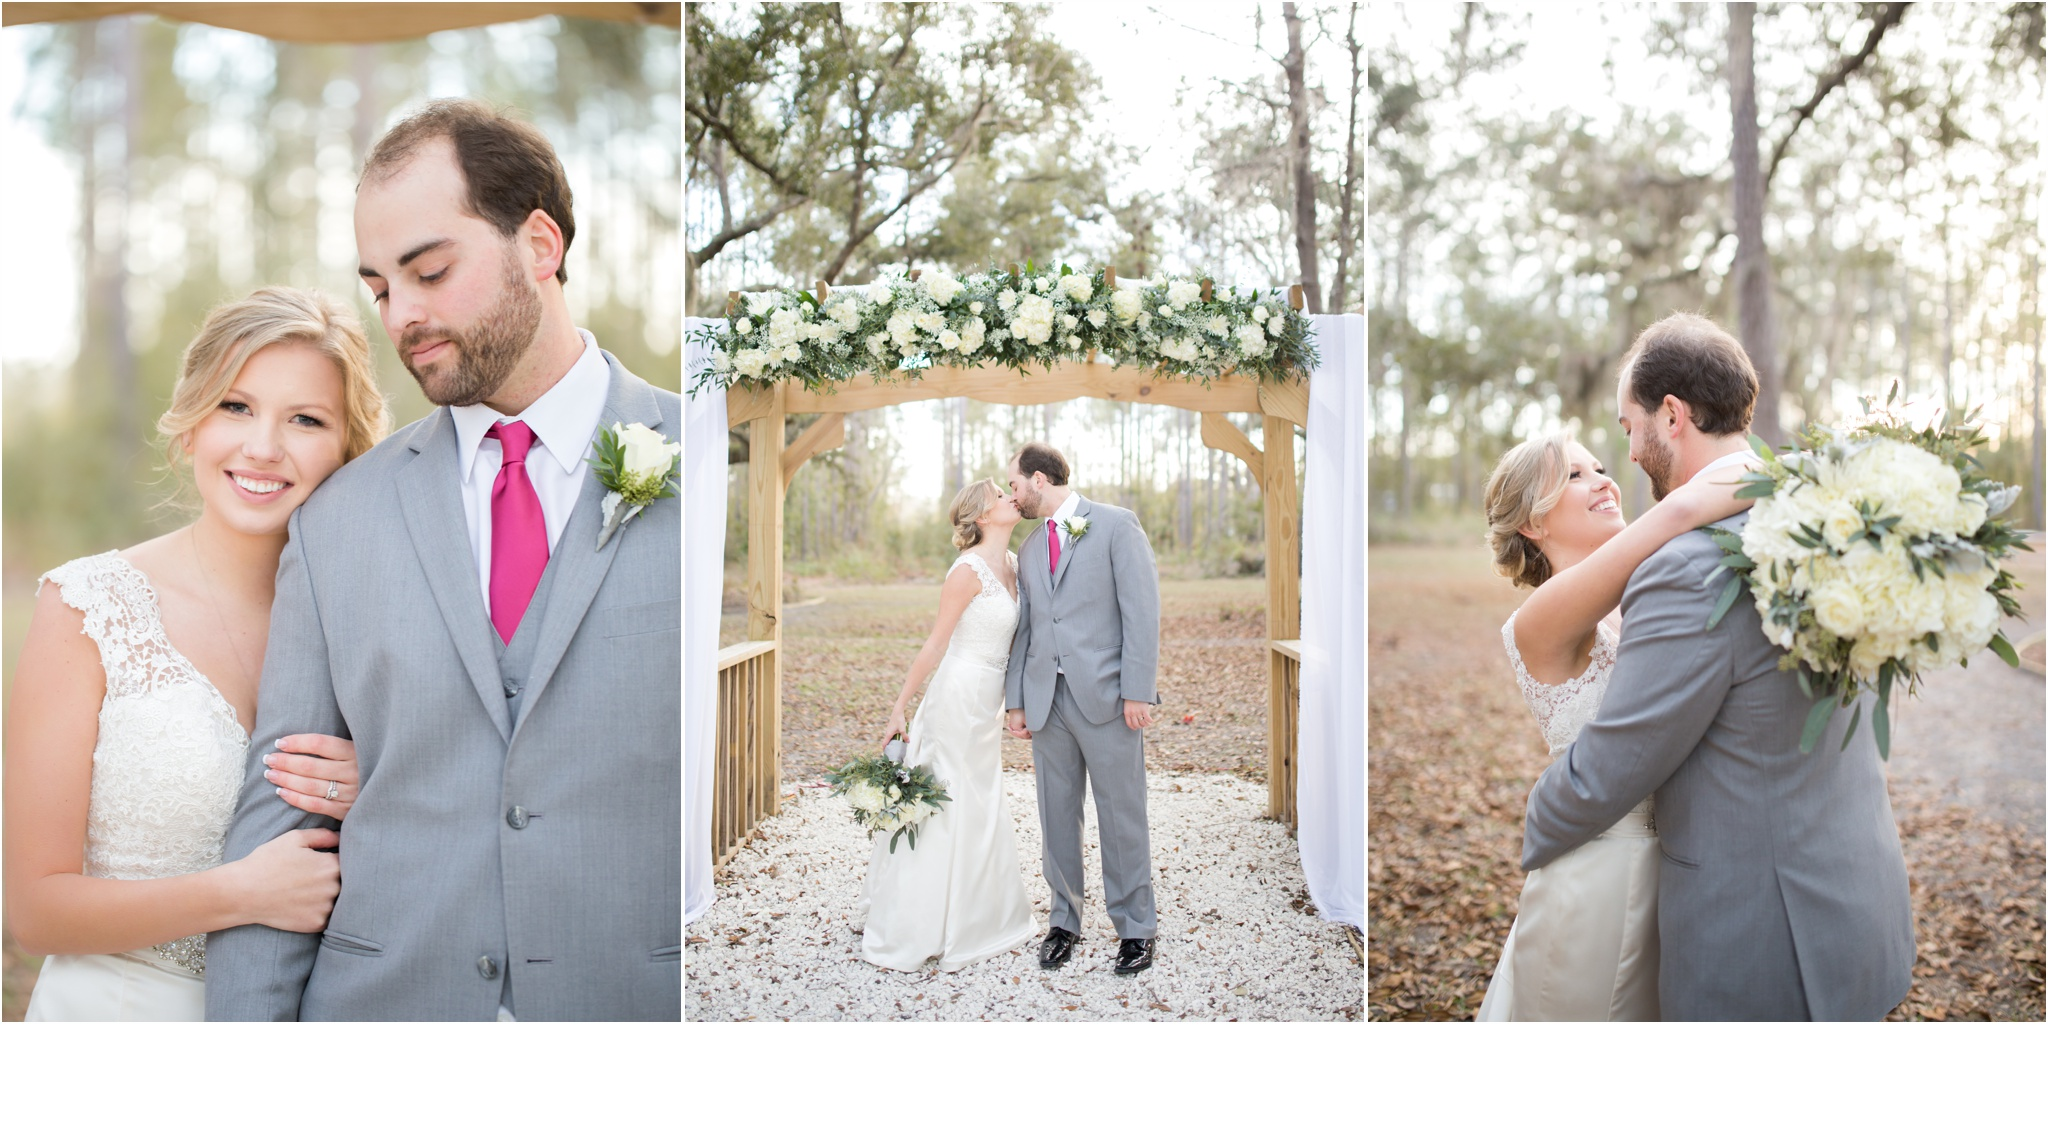 Rainey_Gregg_Photography_St._Simons_Island_Georgia_California_Wedding_Portrait_Photography_0503.jpg